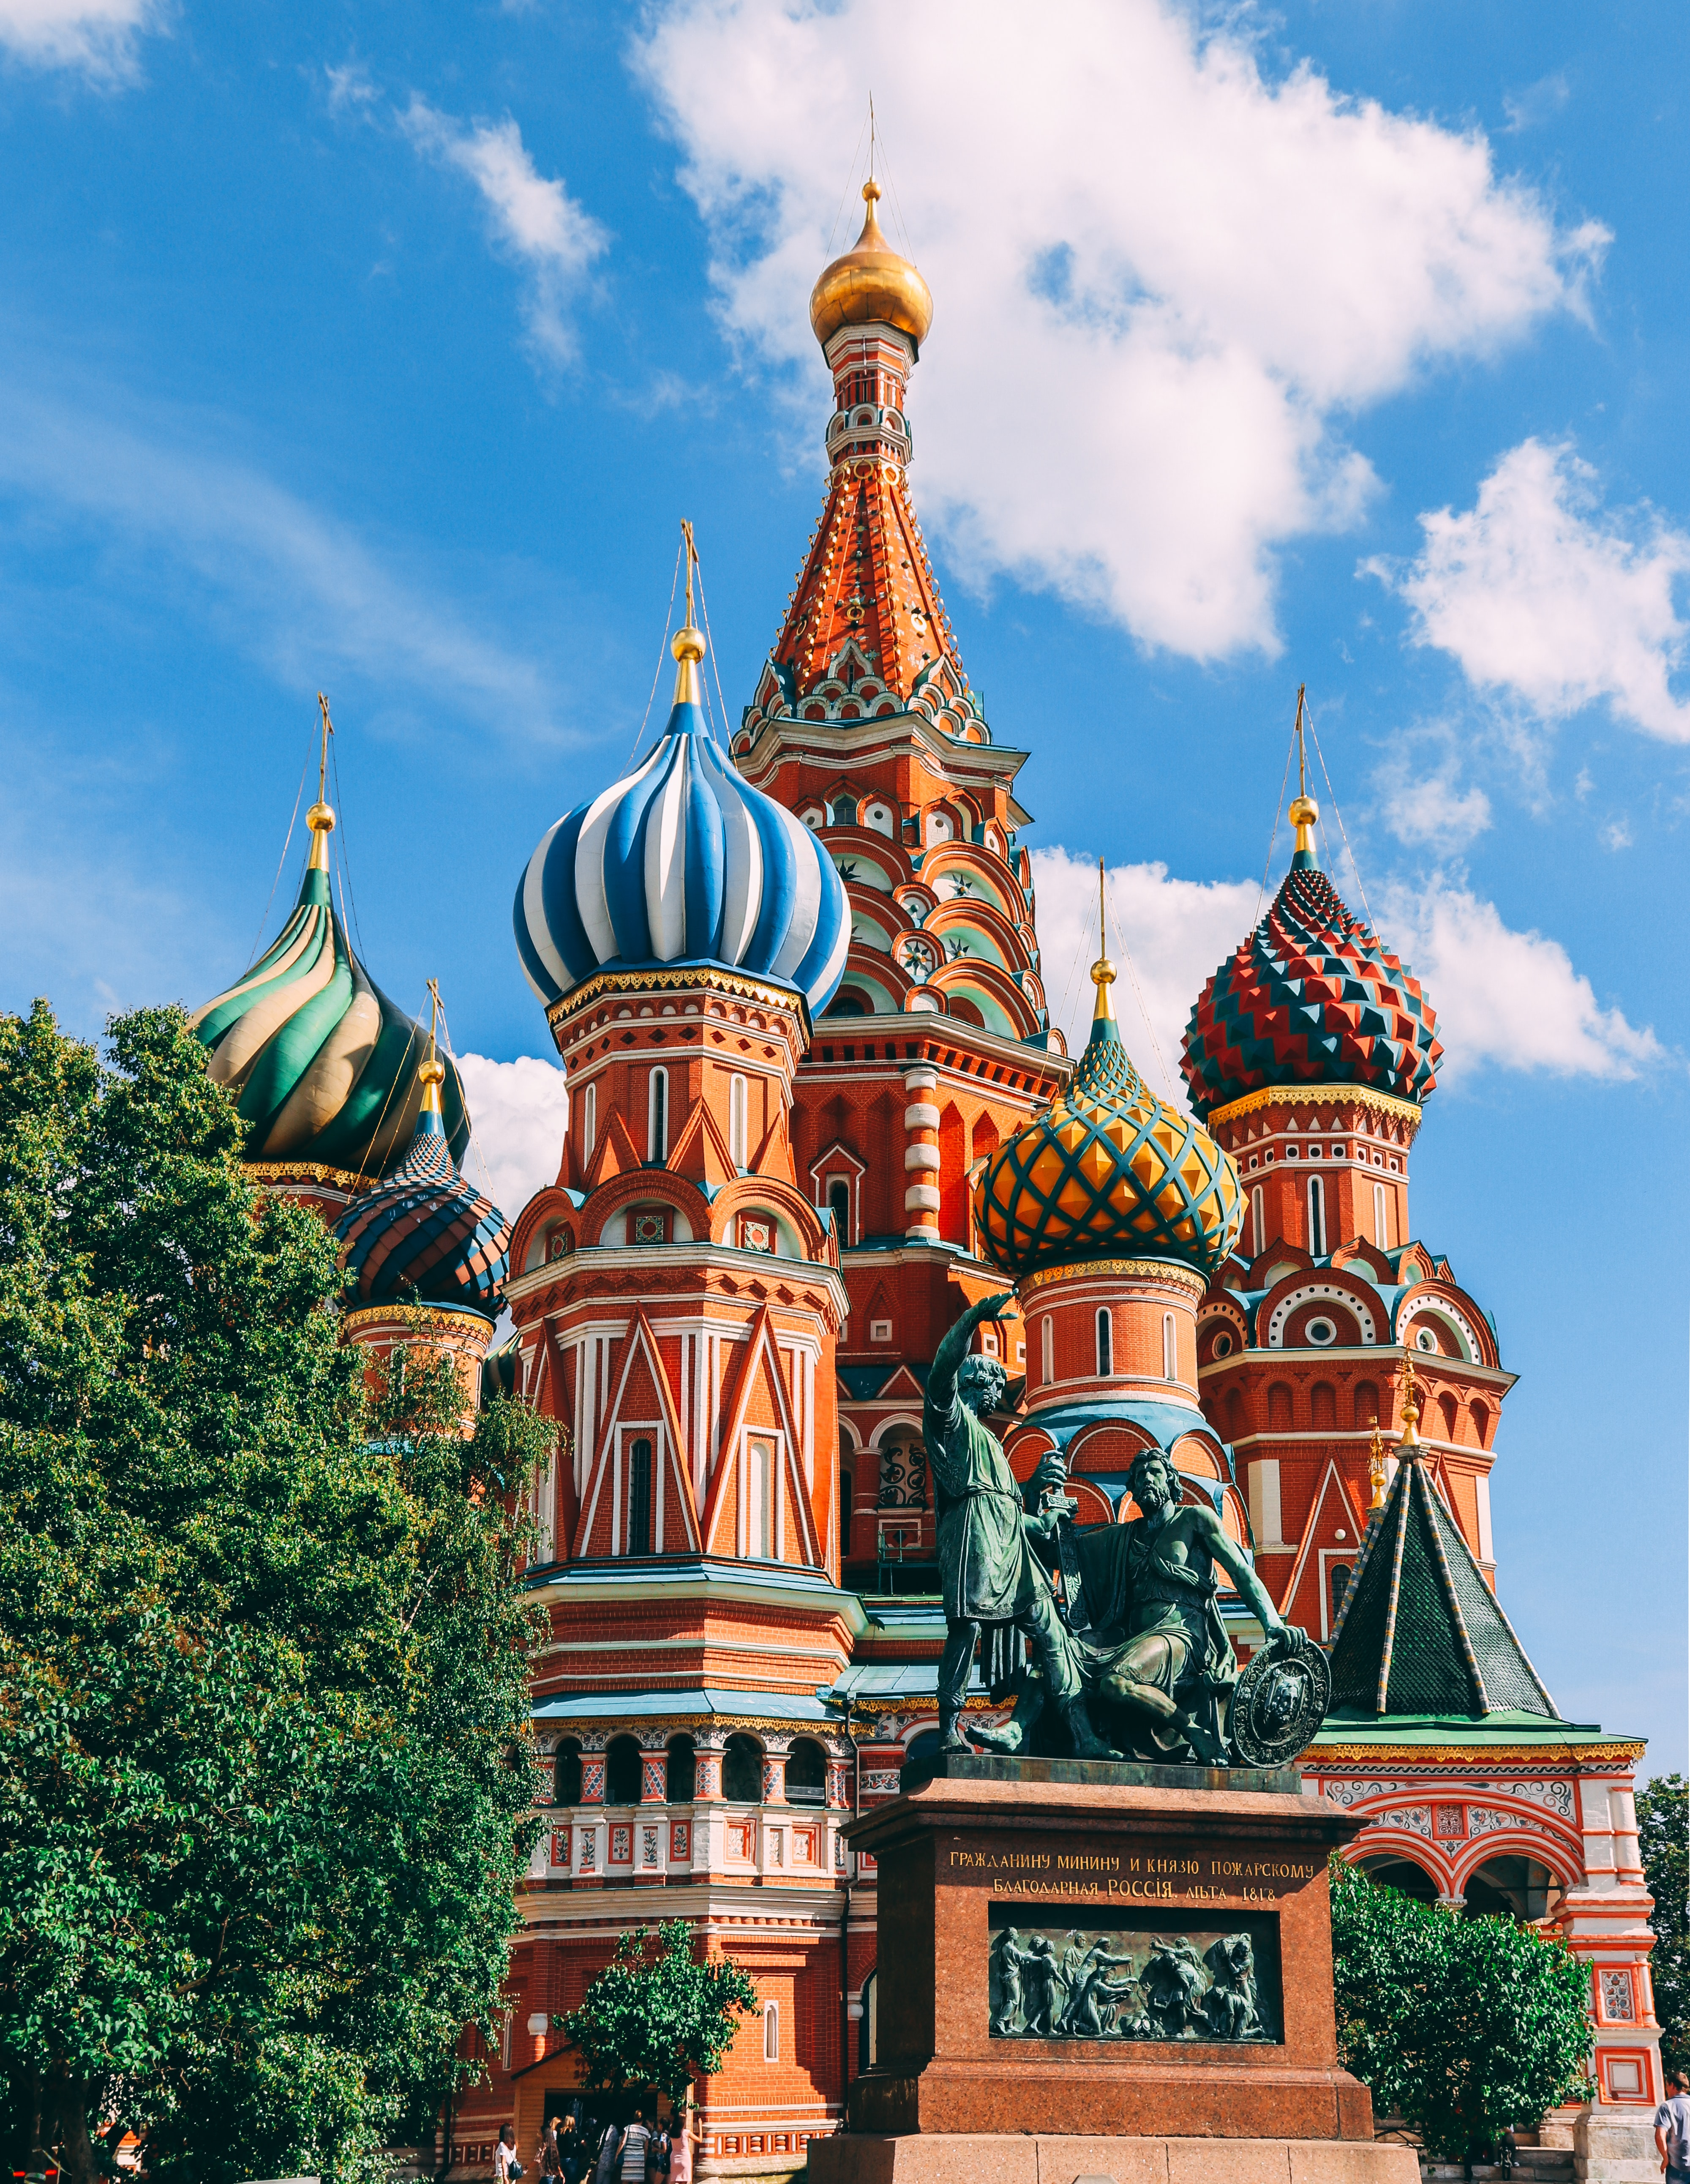 Saint Basil's Cathedral, Moscow, Russia